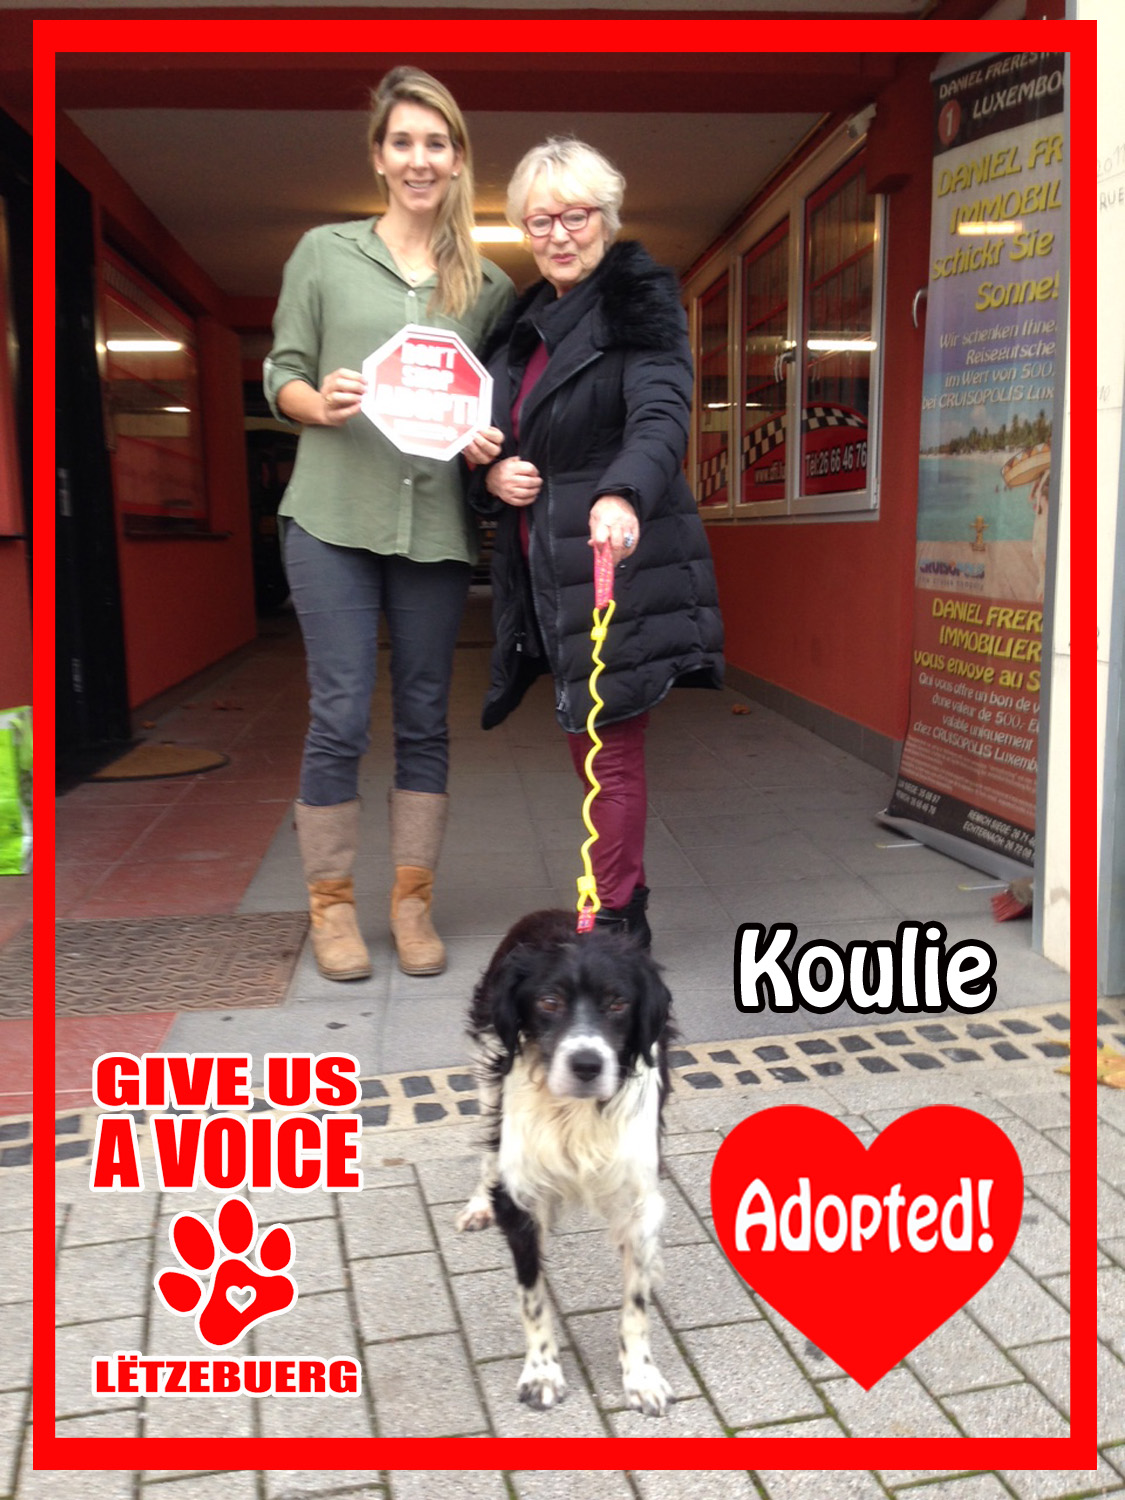 Koulie Adopted copy